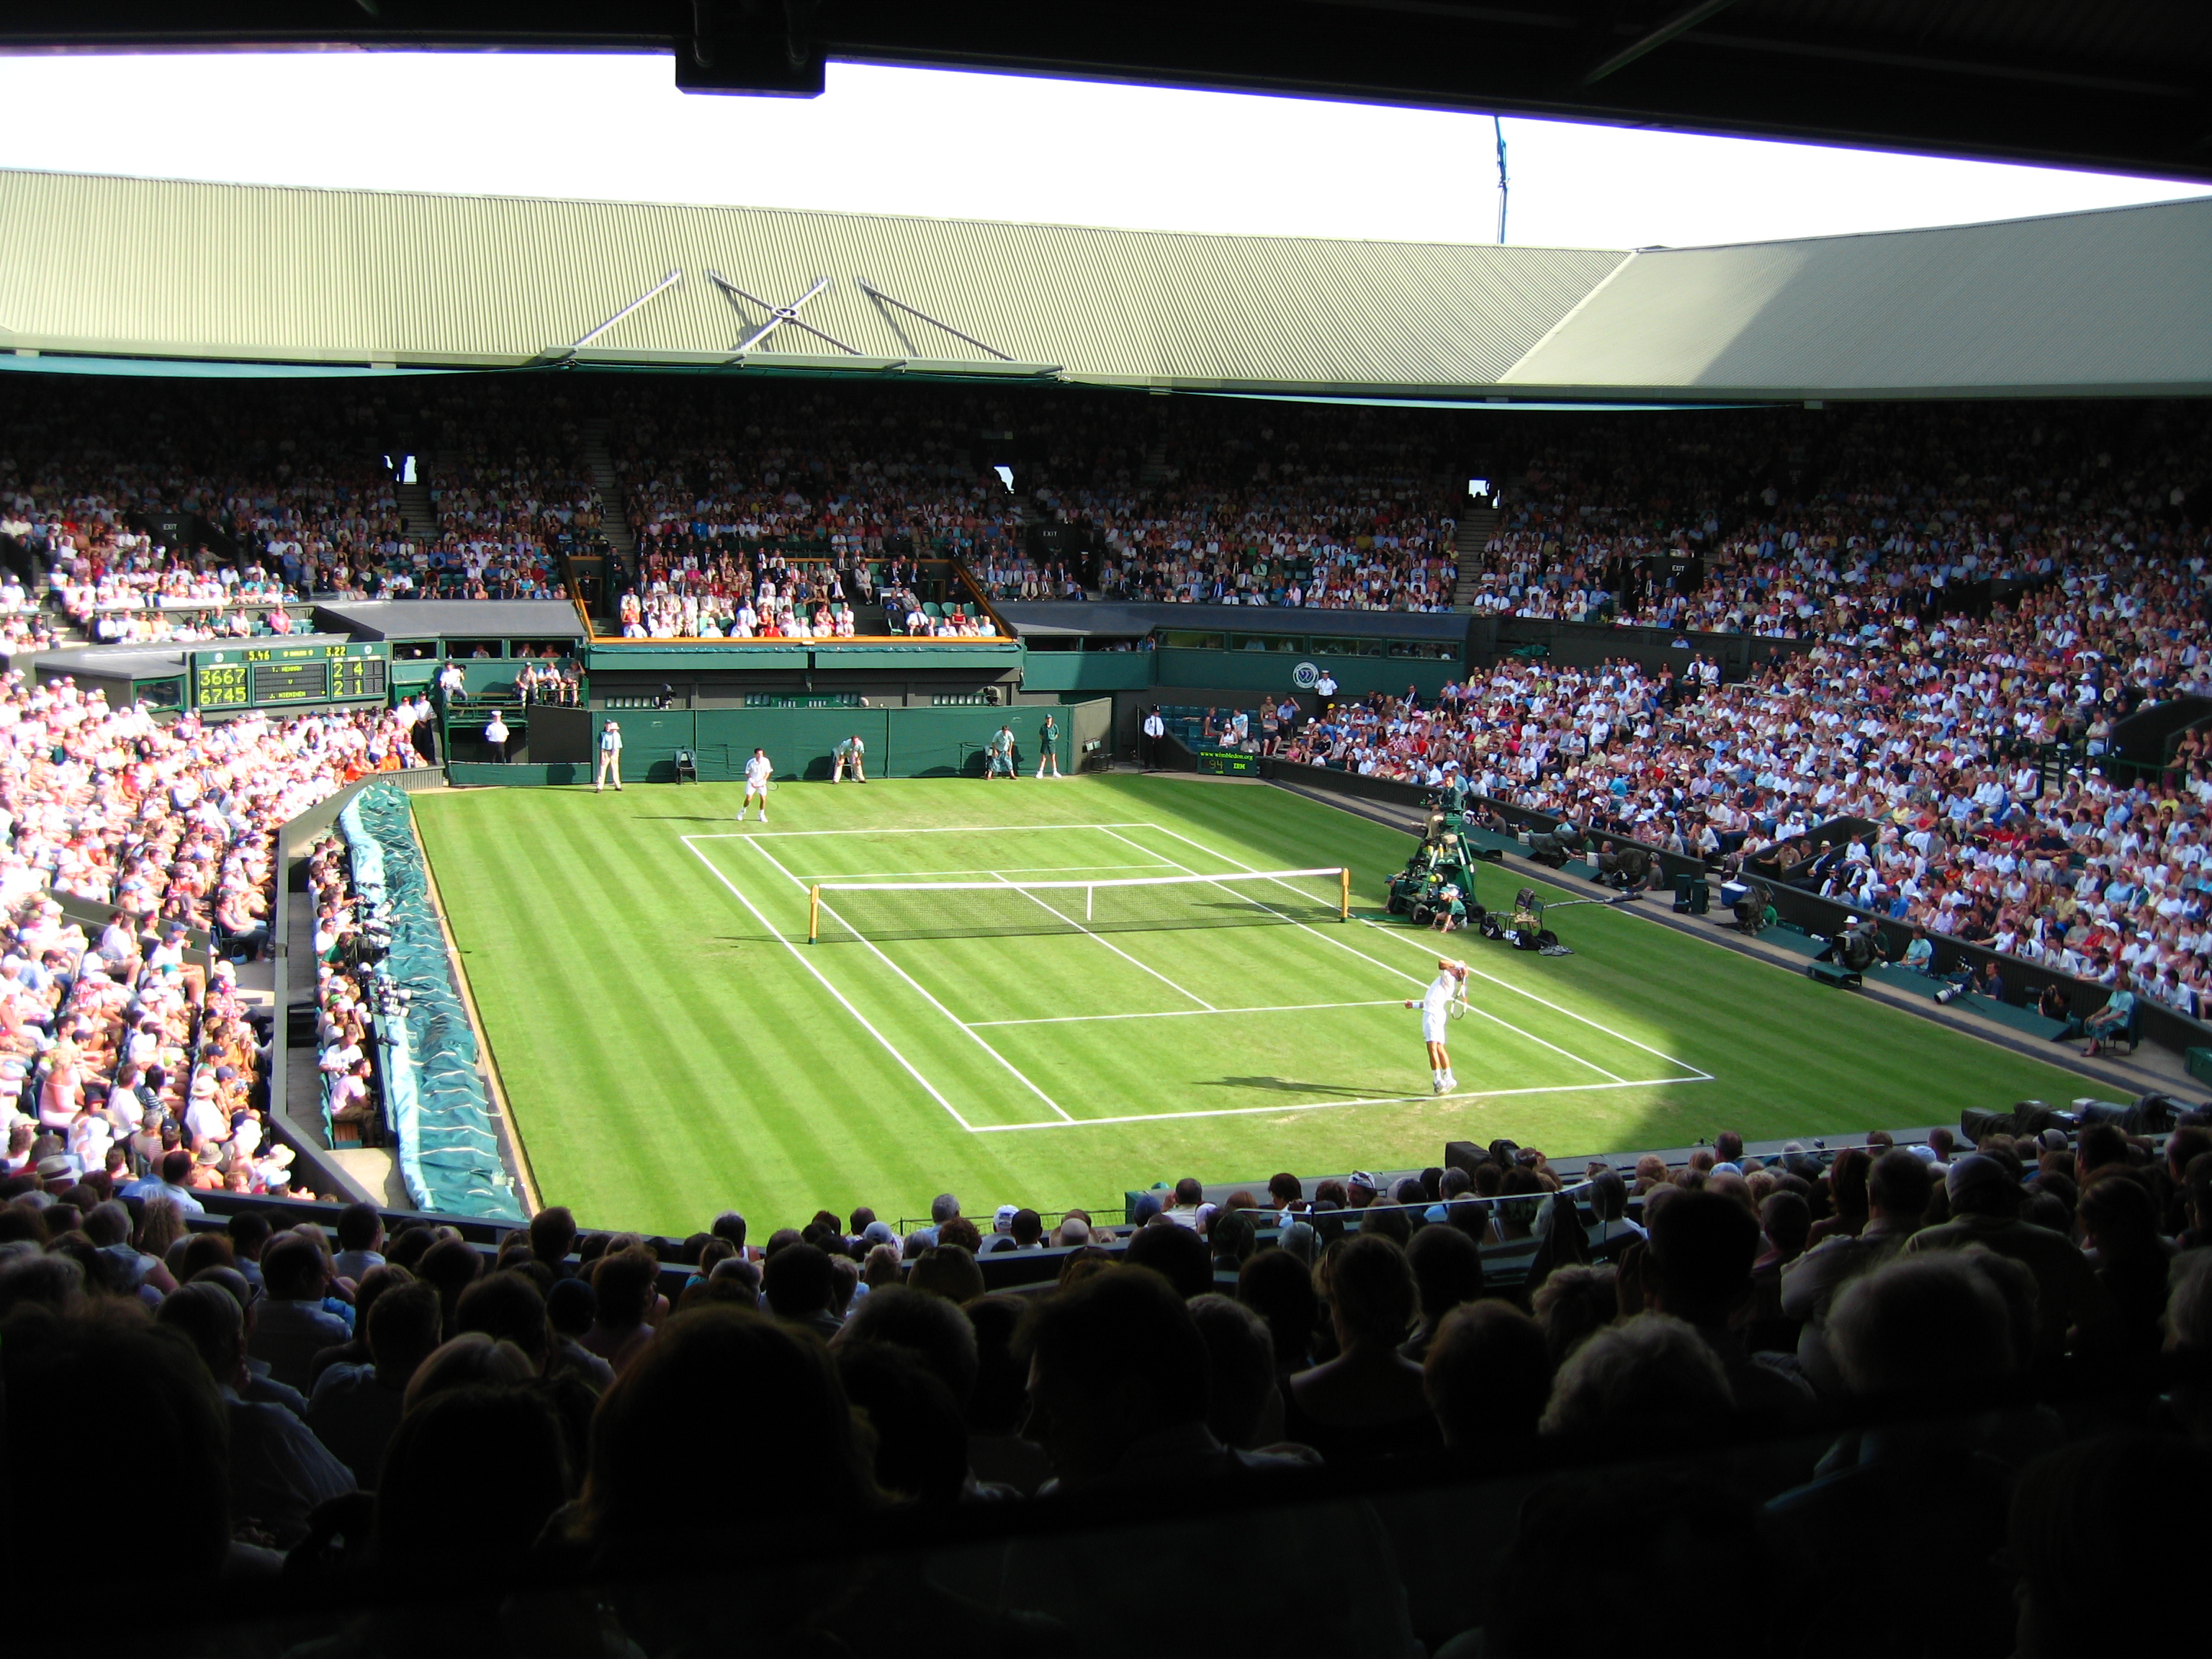 File:Centre Court Wimbledon (2).jpg - Wikimedia Commons